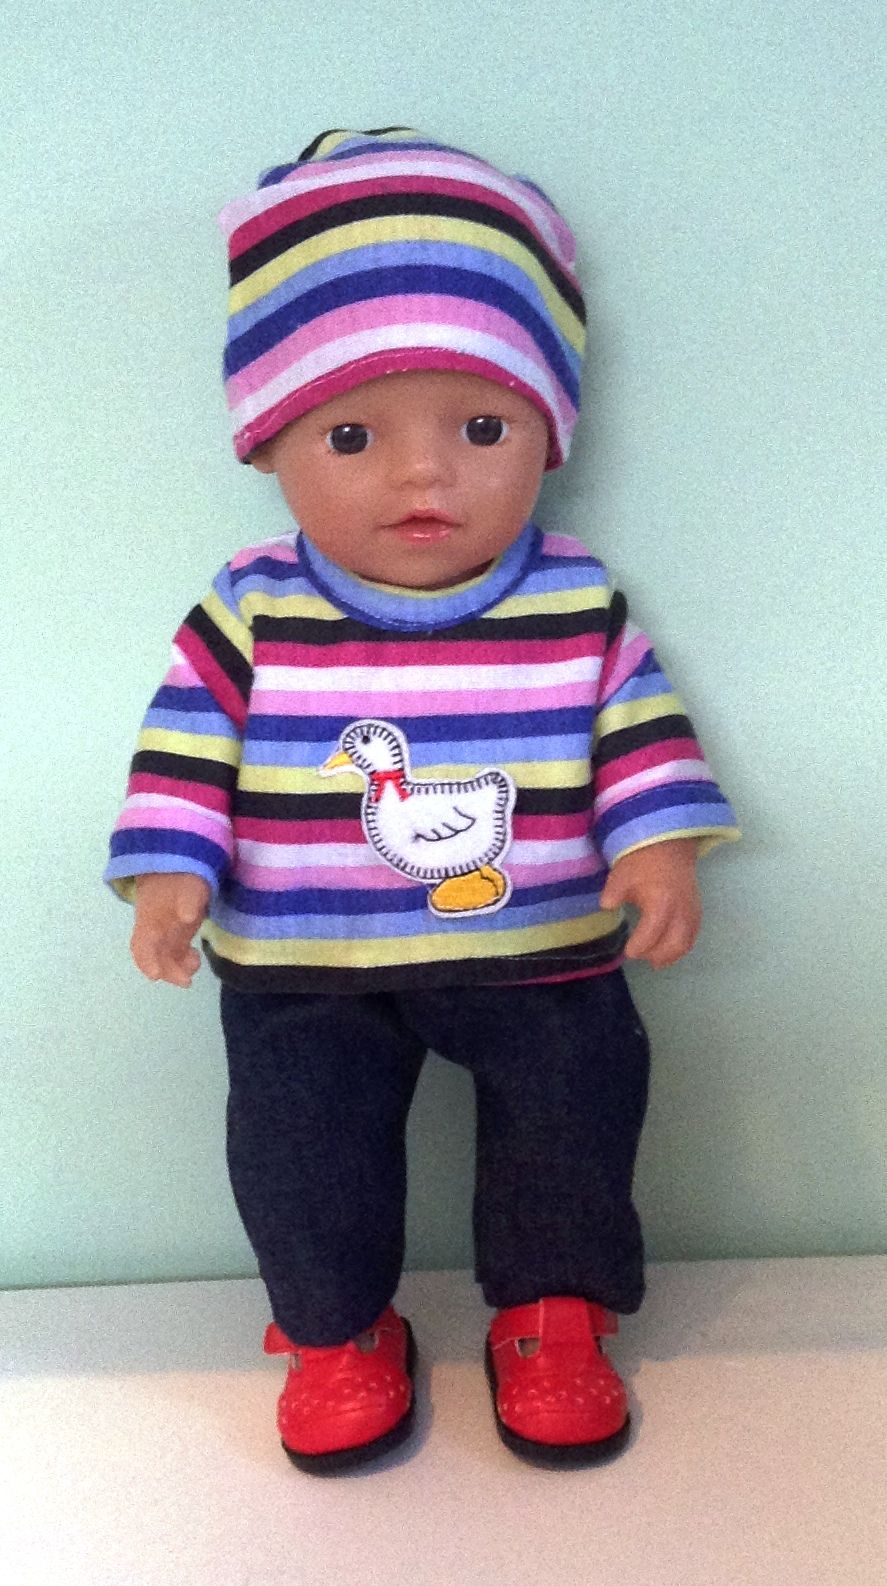 Doll's sweatshirt , hat and jeans set made to fit 12 inch high baby boy dol